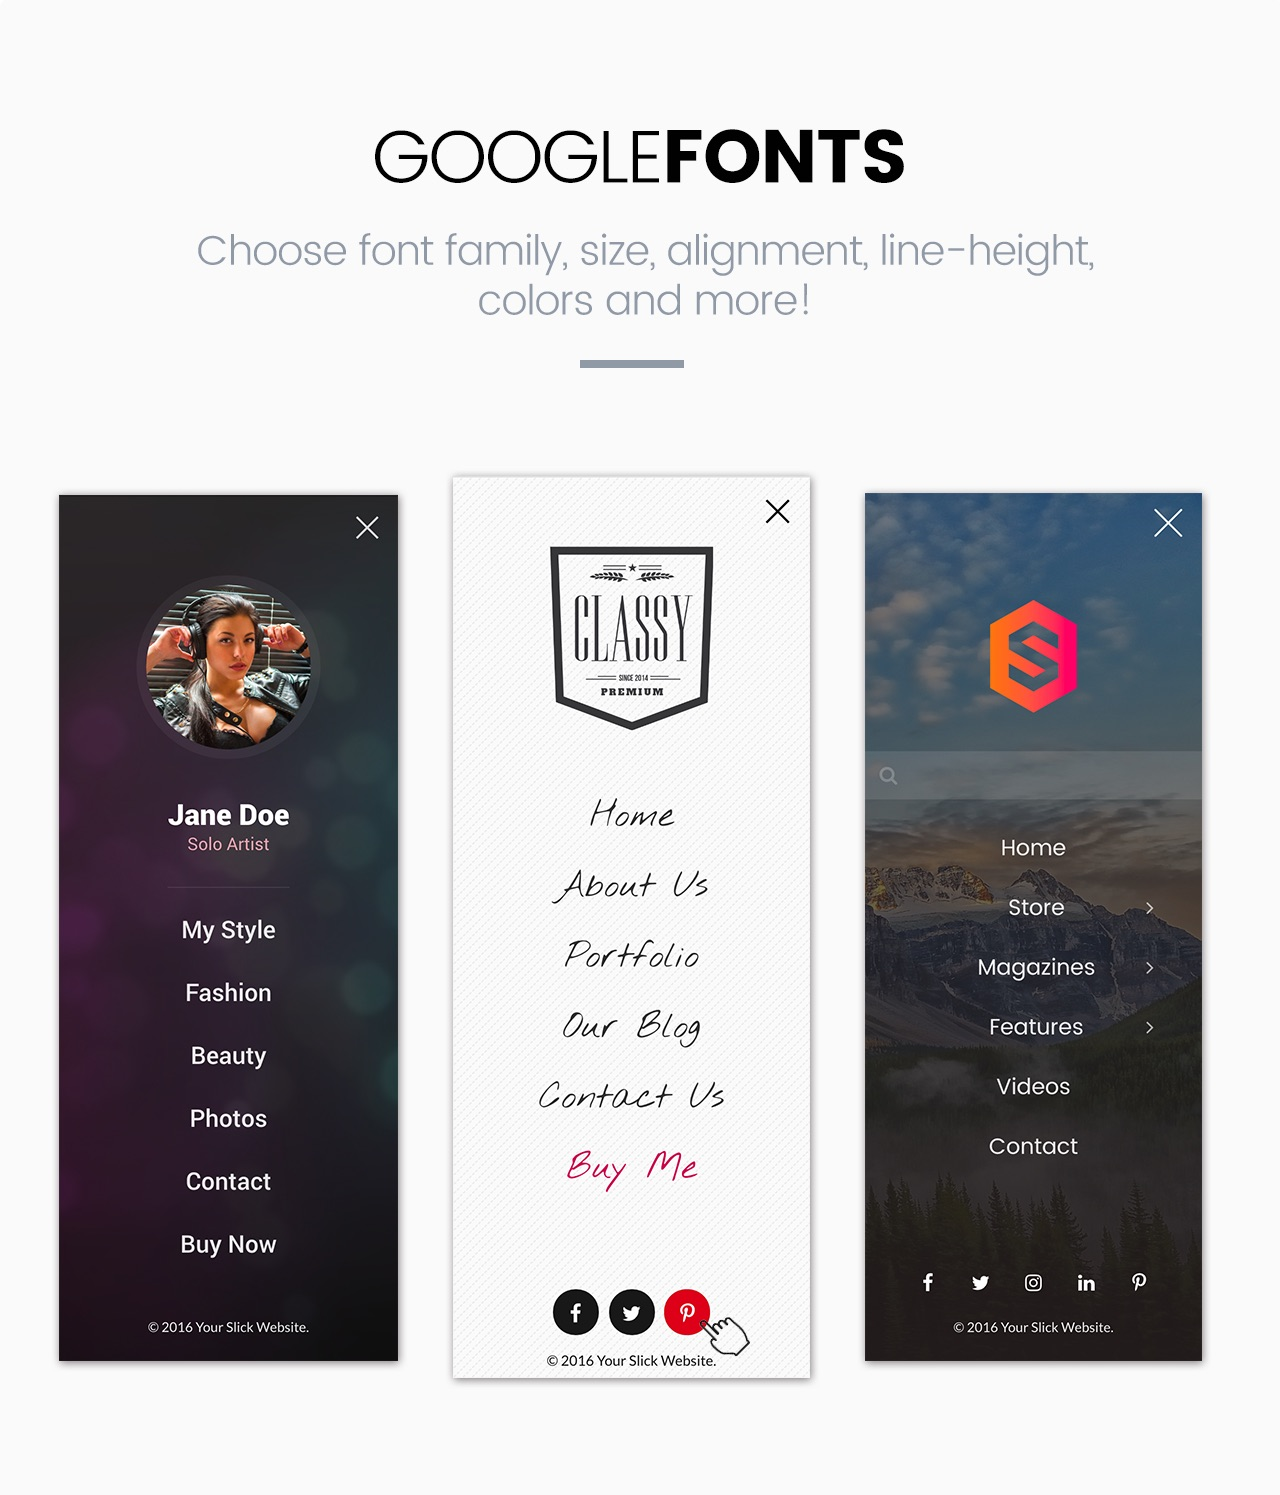 Slick Menu - Google Fonts